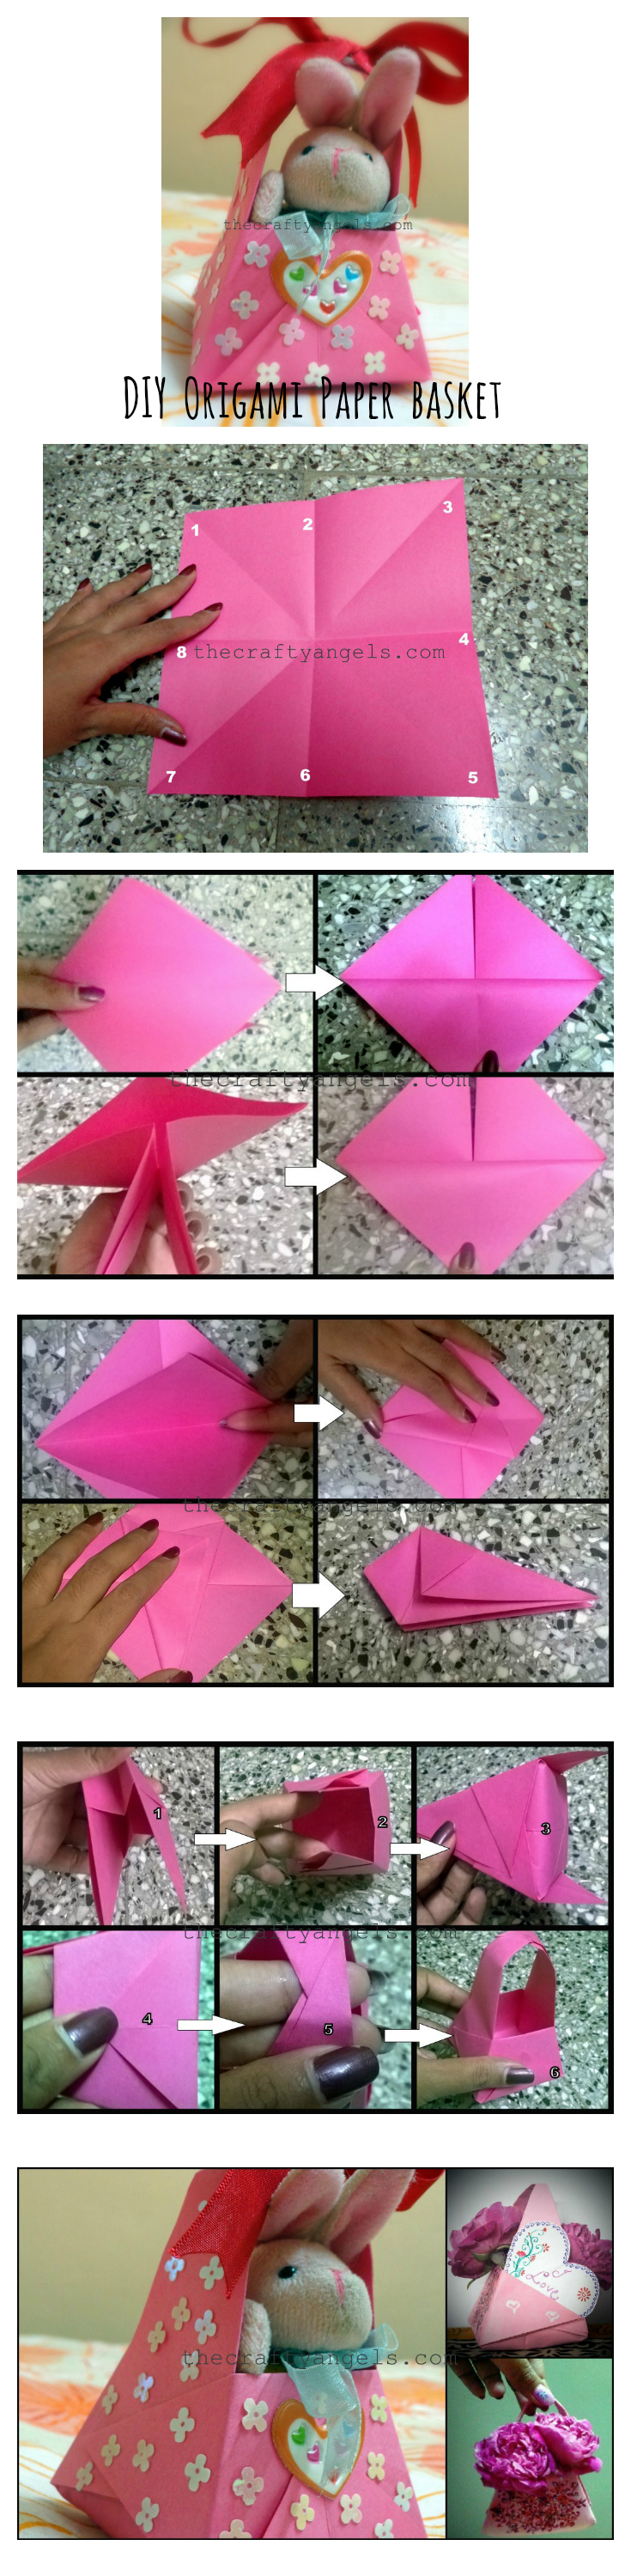 DIY Origami paper basket collage